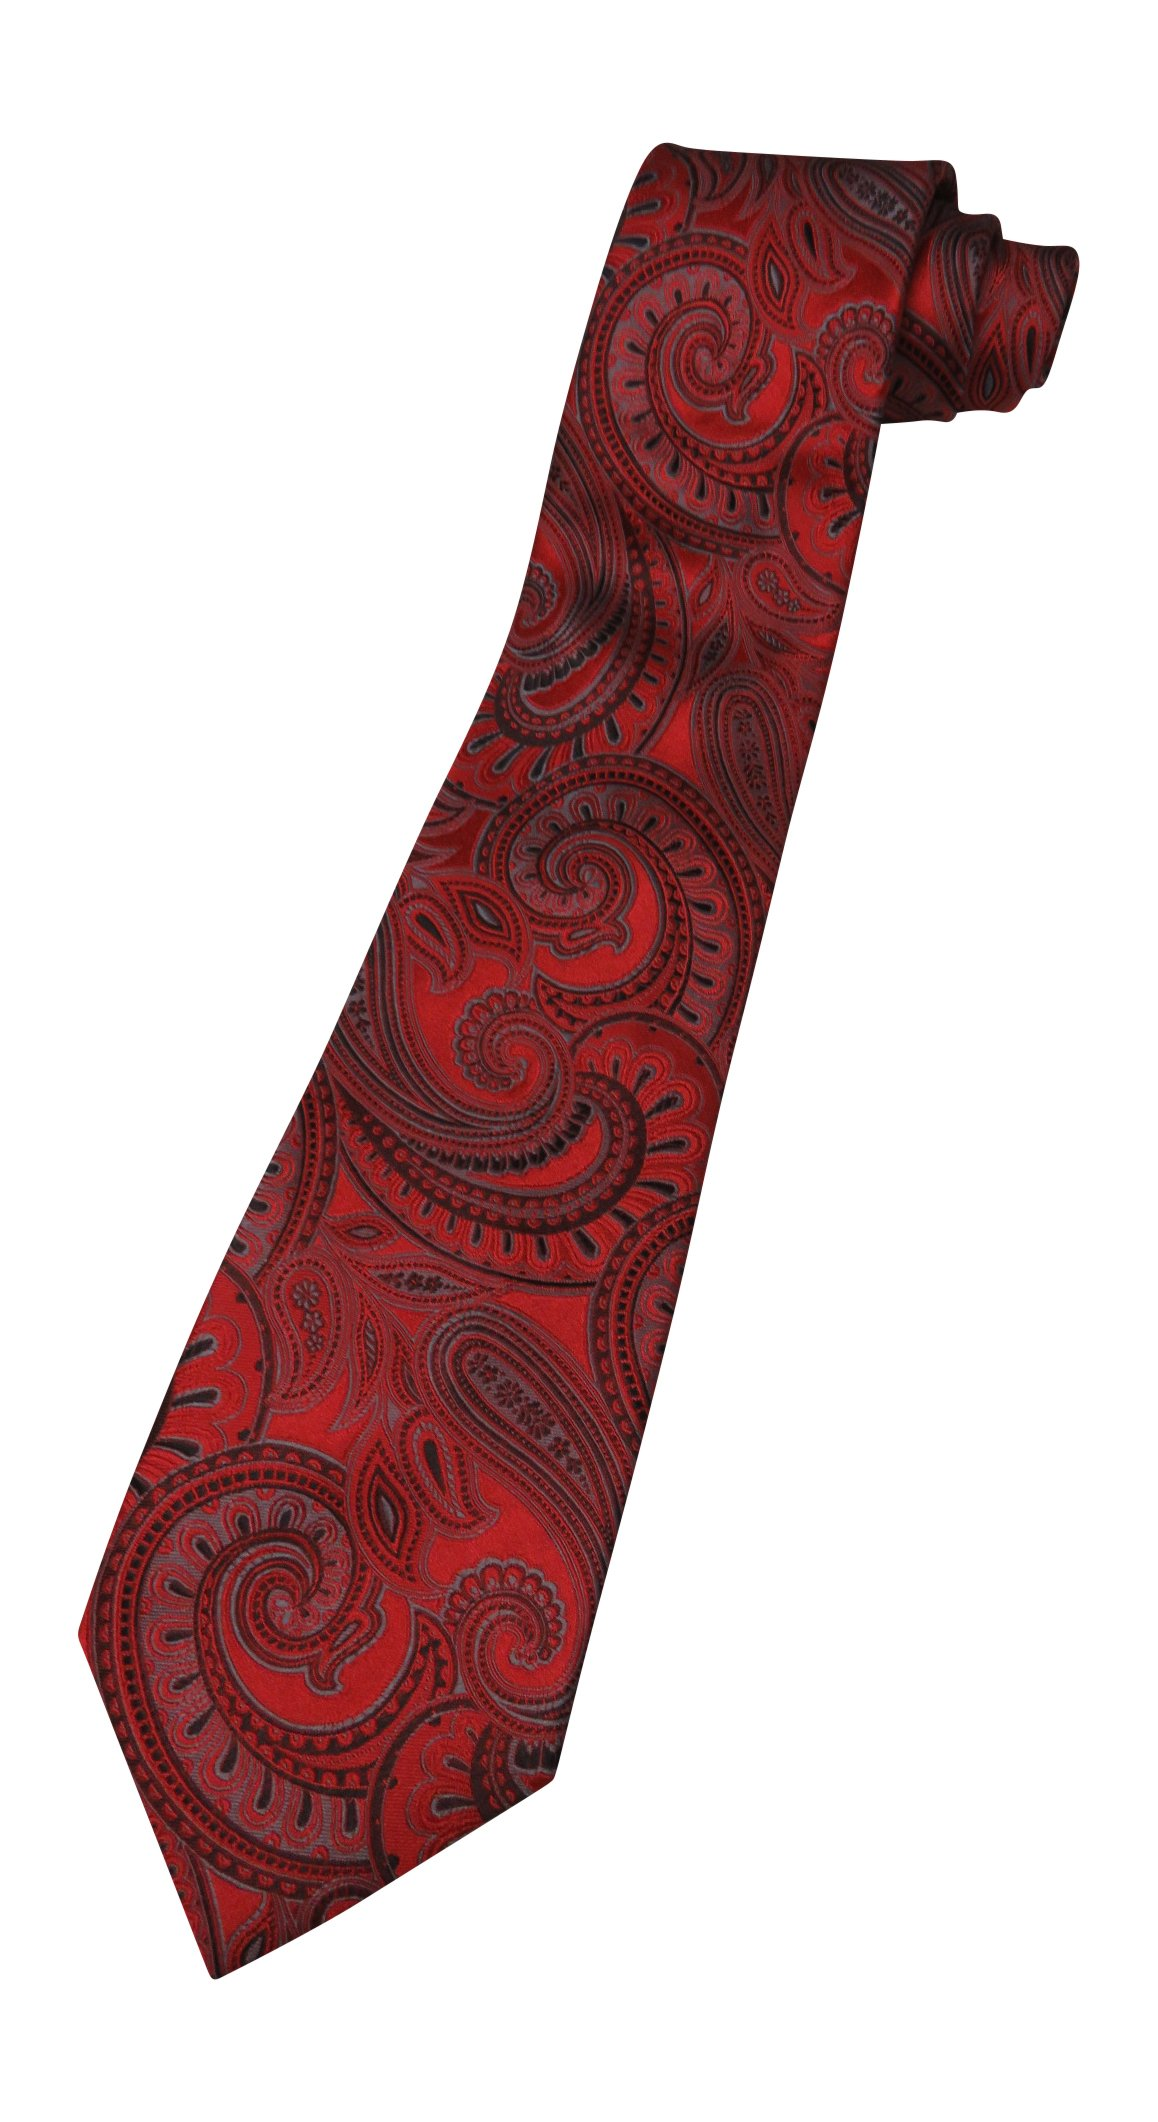 Donald Trump Neck Tie Red, Black and Silver Paisley with Gold Plaque